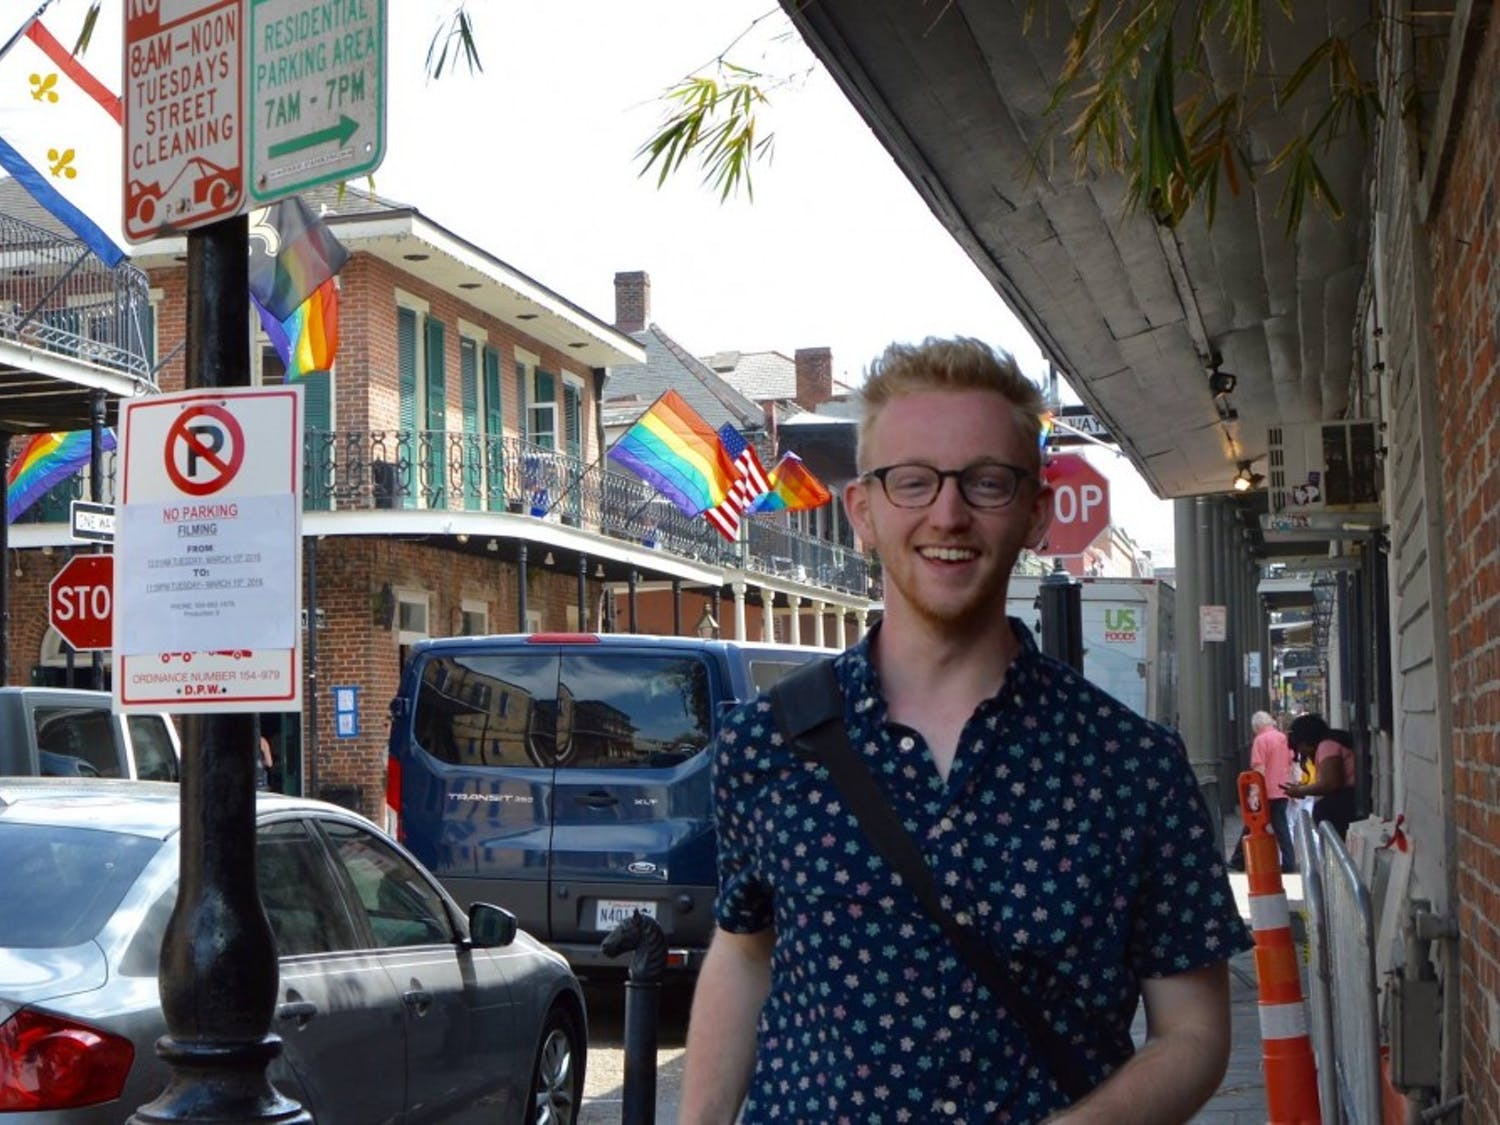 Online managing editor Danny Nett doin' some queer stuff in New Orleans, 2016